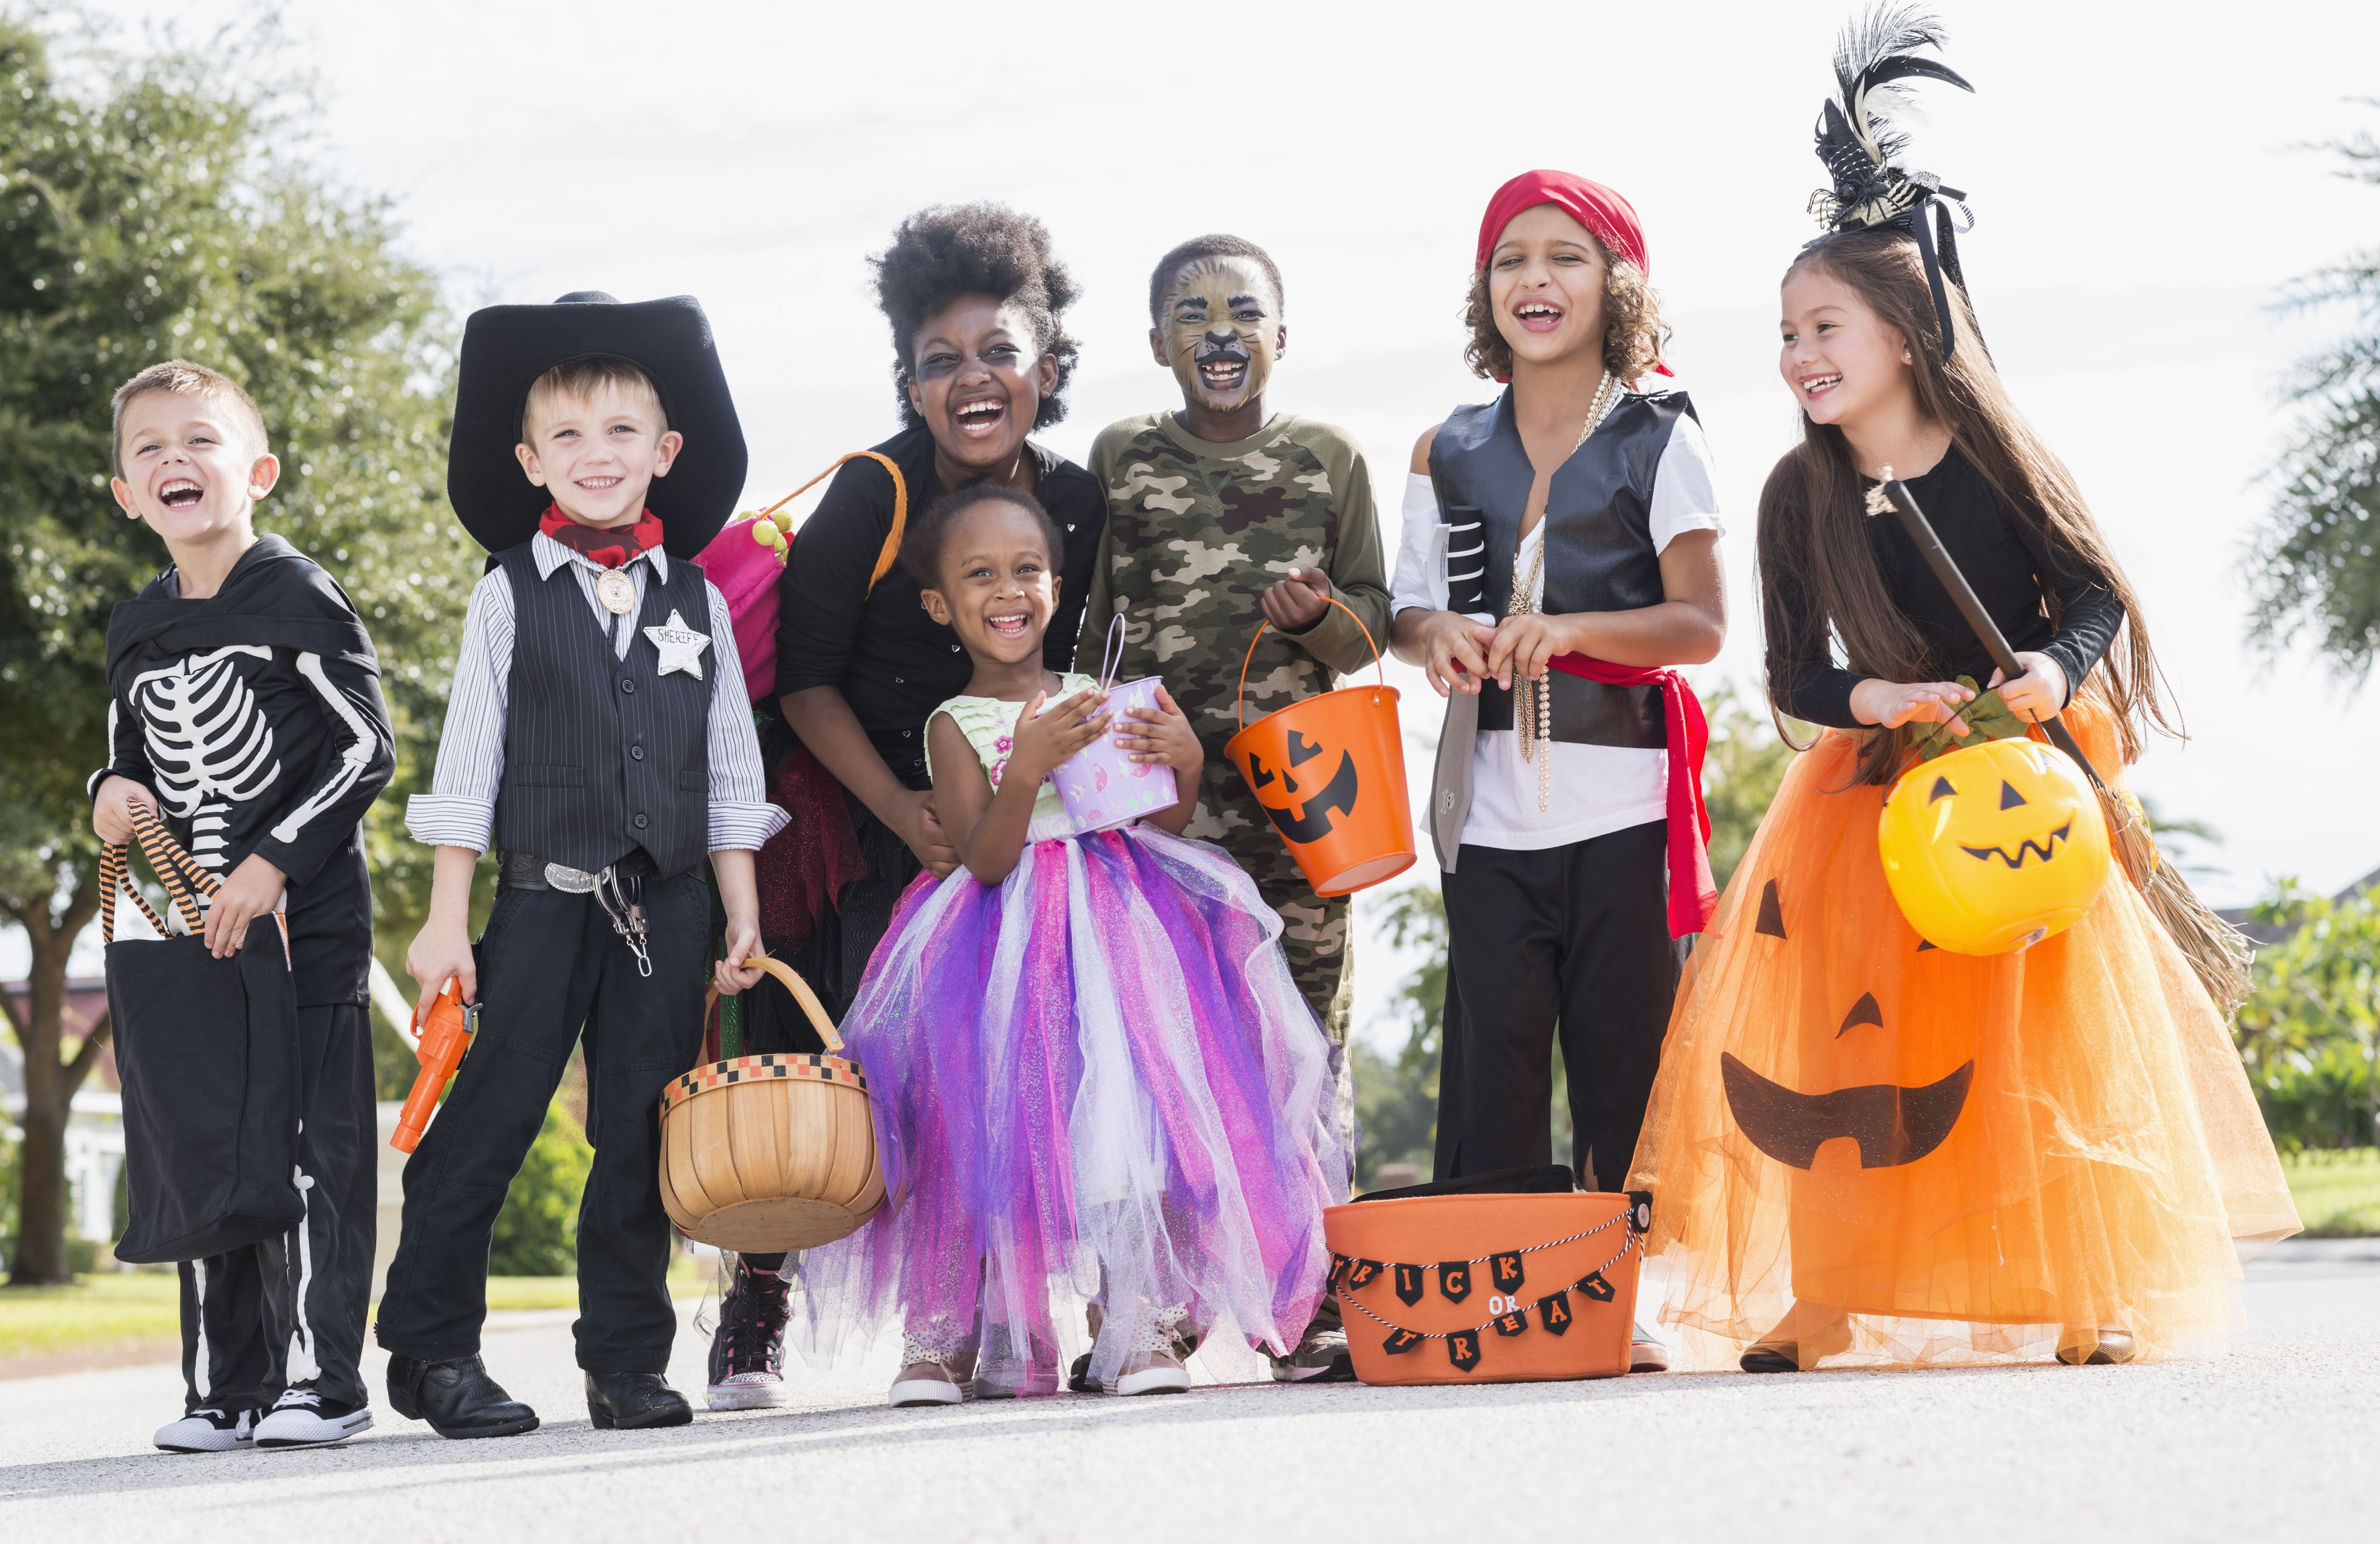 halloween printables: wordsearch, crossword puzzles, and more